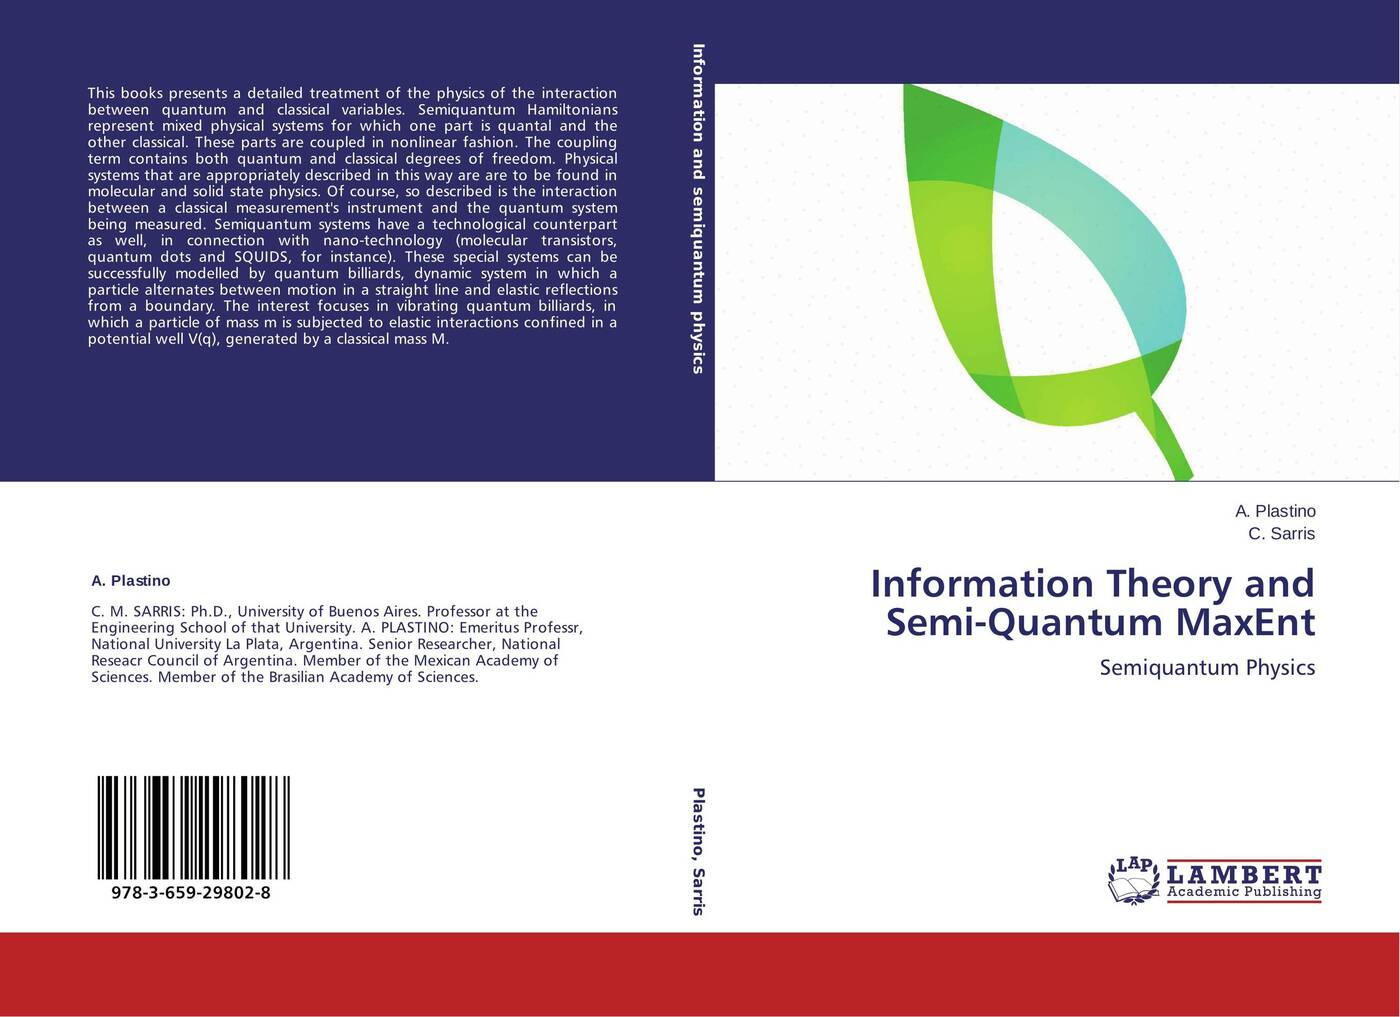 A. Plastino and C. Sarris Information Theory and Semi-Quantum MaxEnt martin bojowald the universe a view from classical and quantum gravity isbn 9783527667697